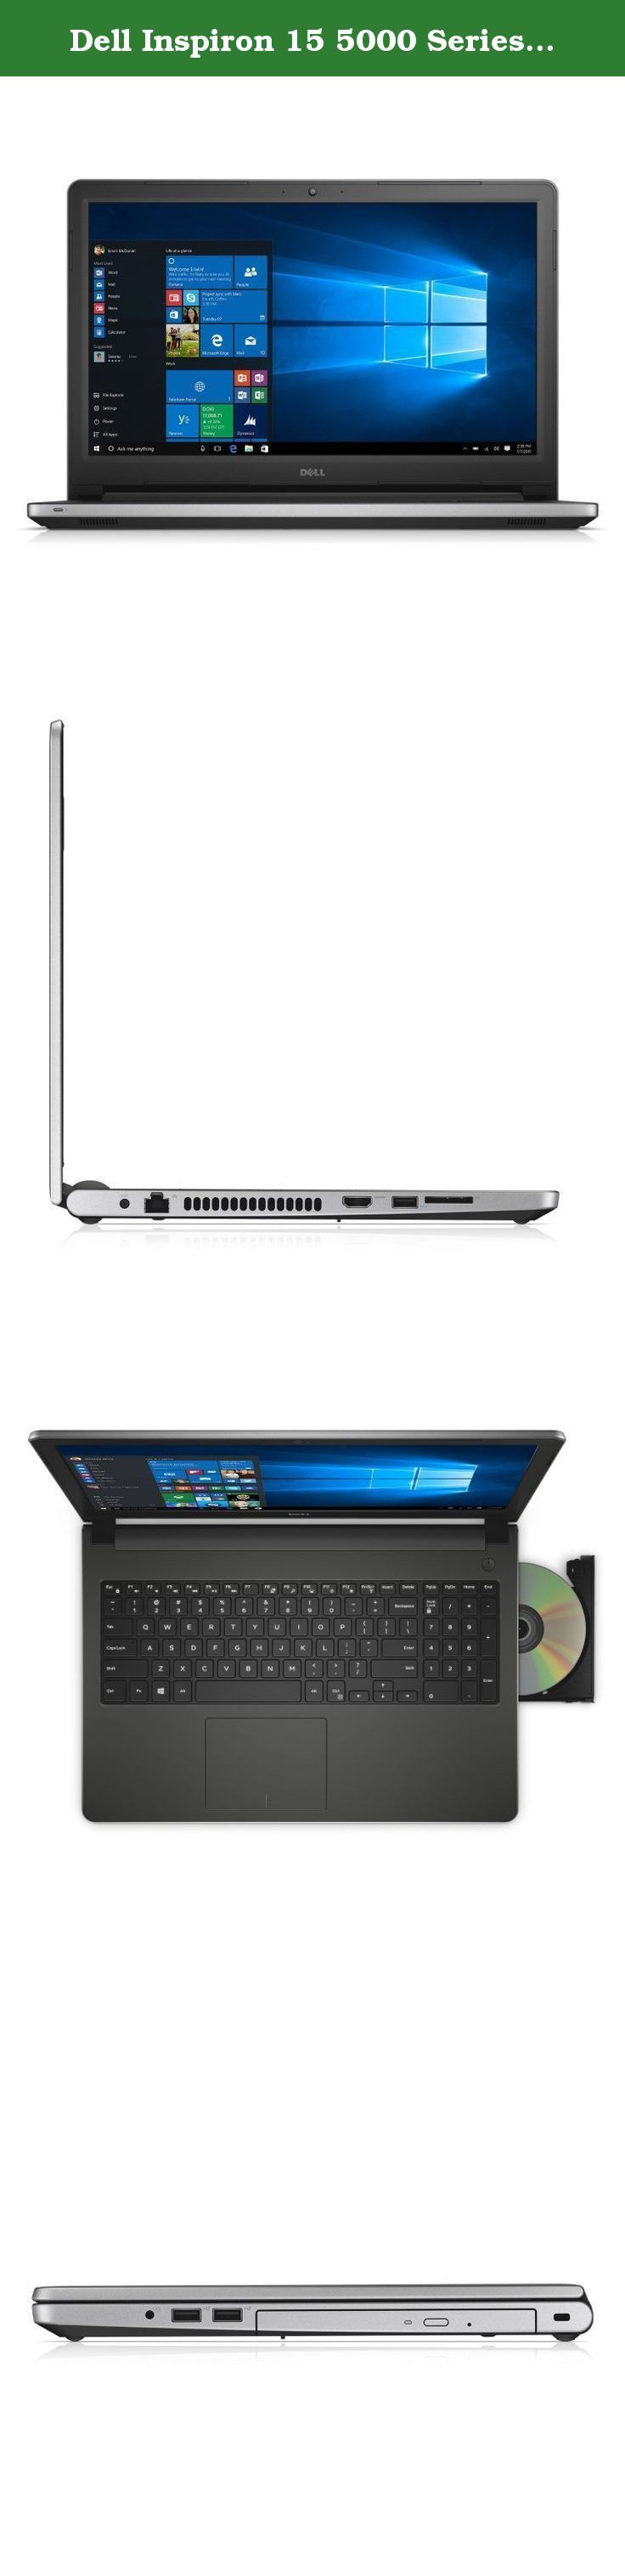 Nice Dell Laptops 2017: Dell Inspiron 15 5000 Series 15.6-Inch FHD Touchscreen Laptop - 6th Generation I...  Traditional Laptops, Laptops, Computers & Tablets, Computers & Accessories, Electronics